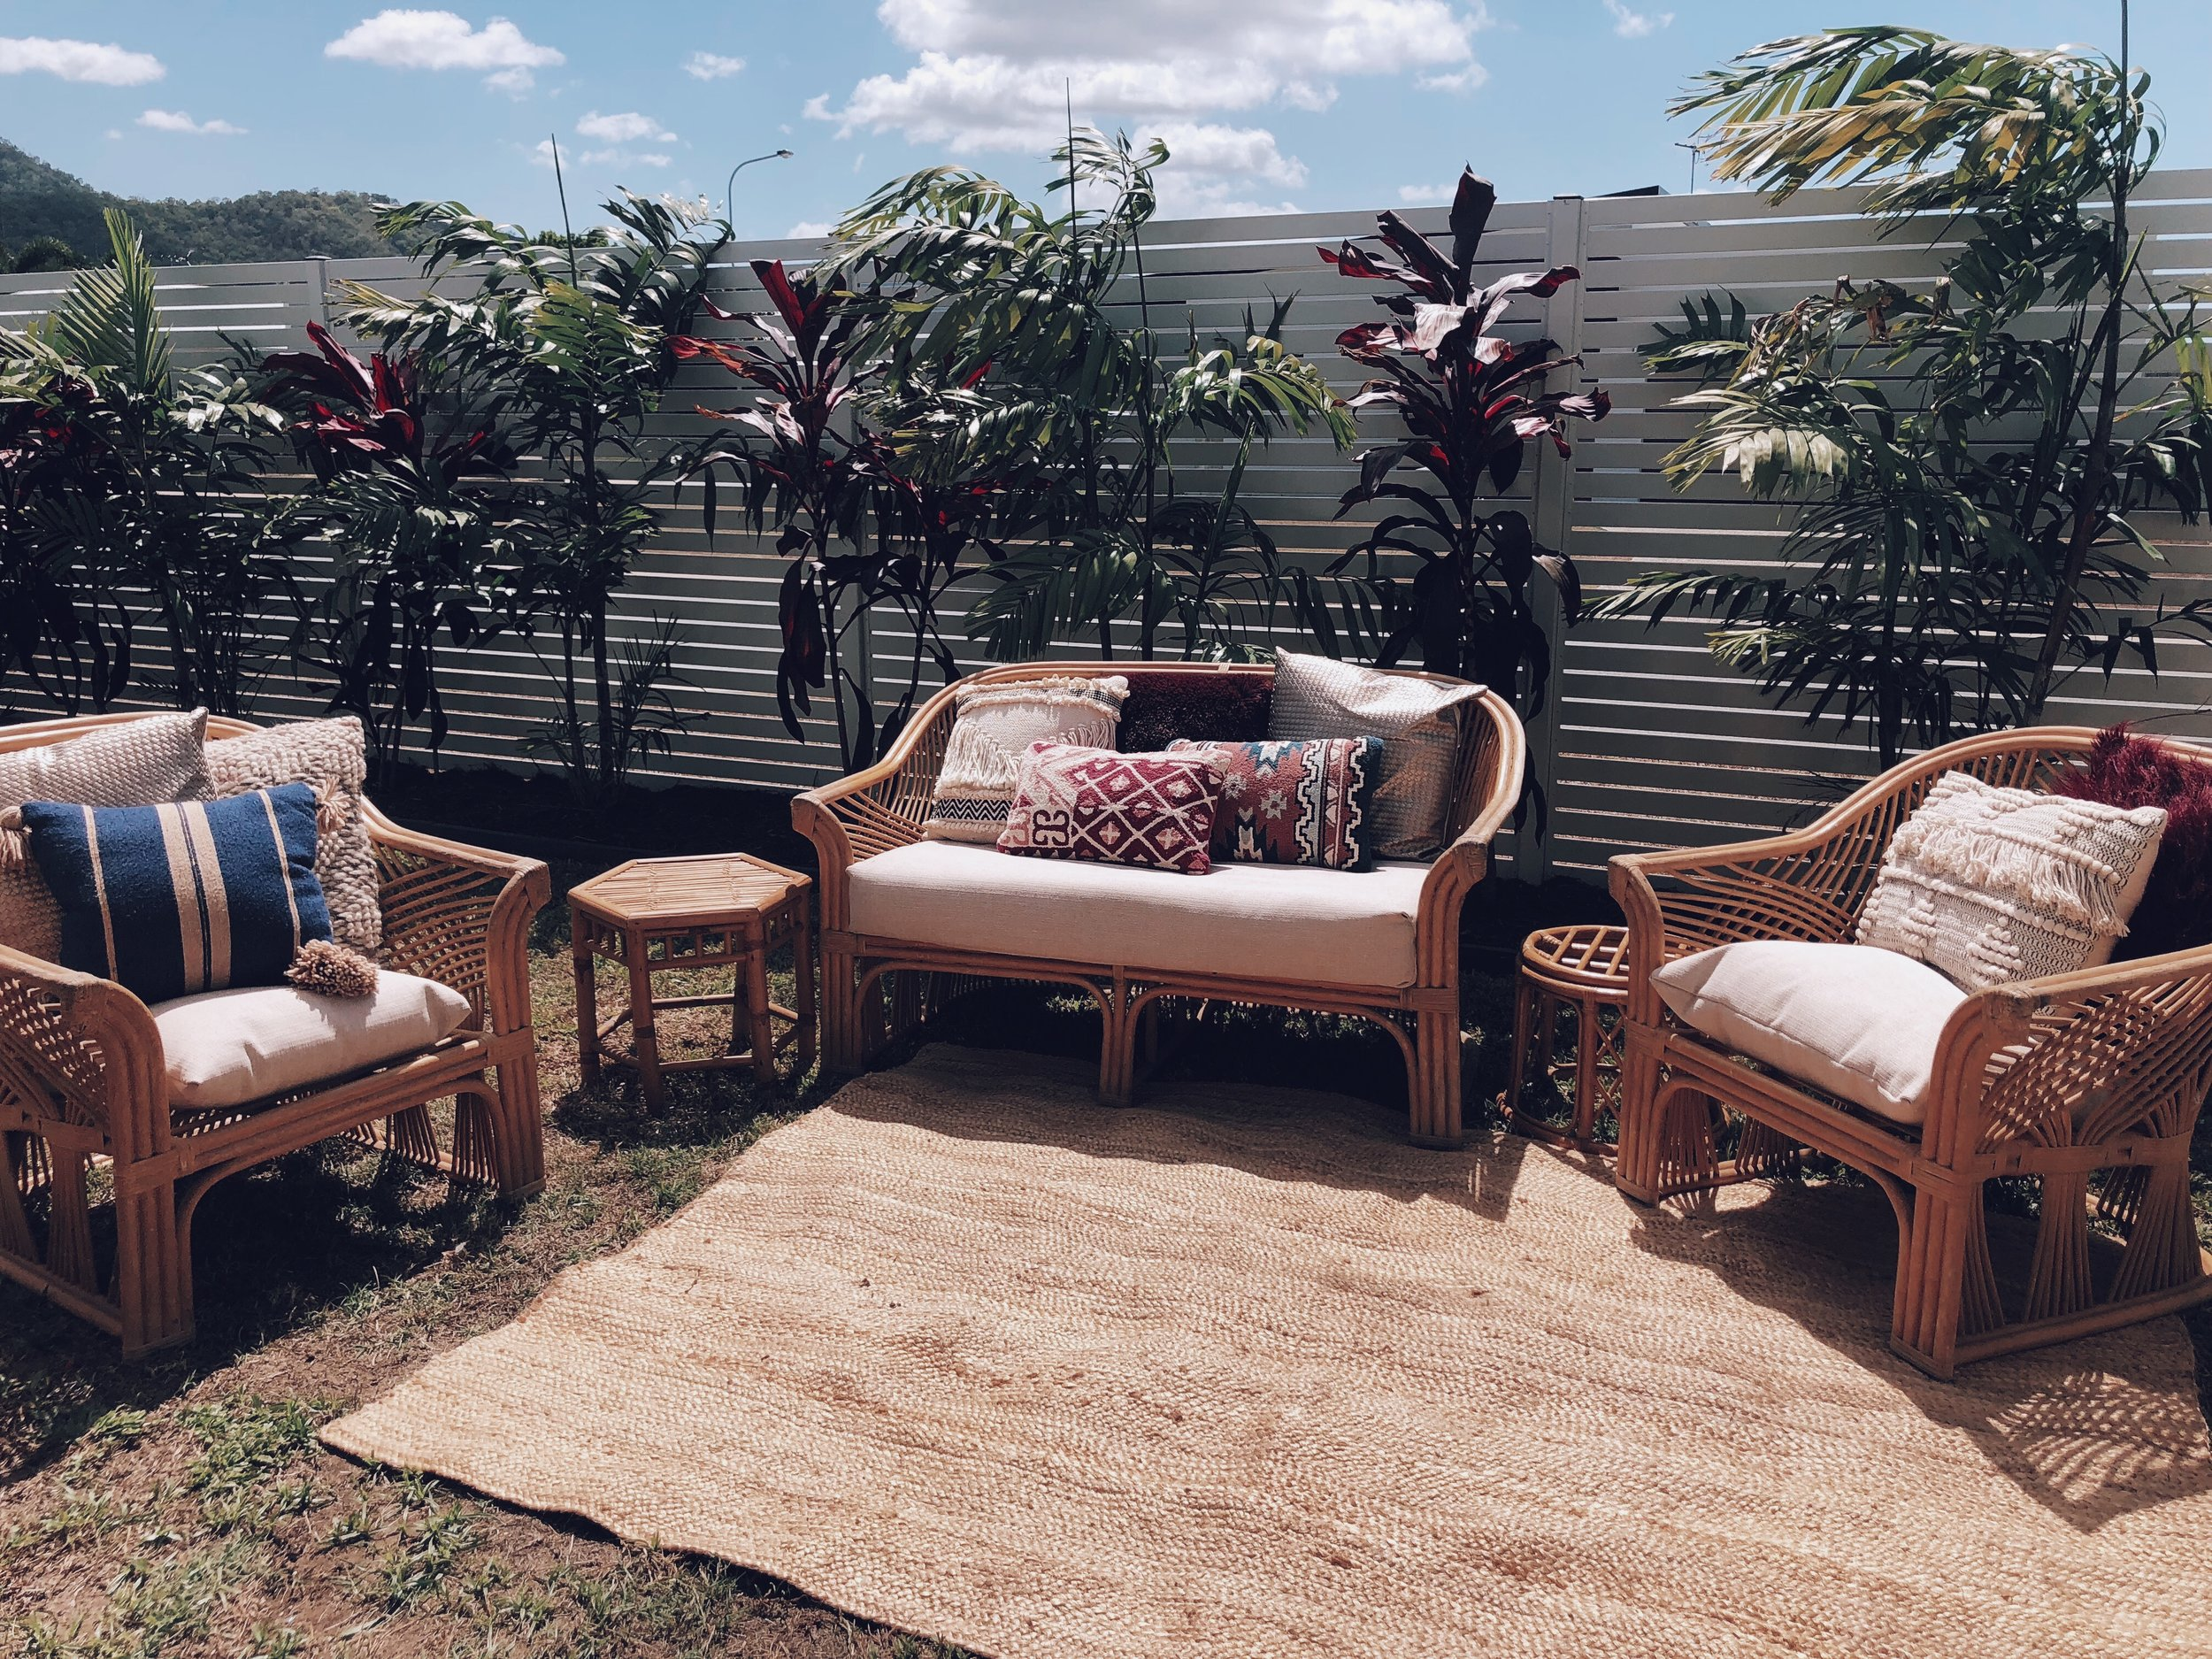 hire cairns_events_cane_backyard wedding cairns_event stylist_The collection Co_design_wedding style_cairns wedding planner_cairns wedding stylist.JPG